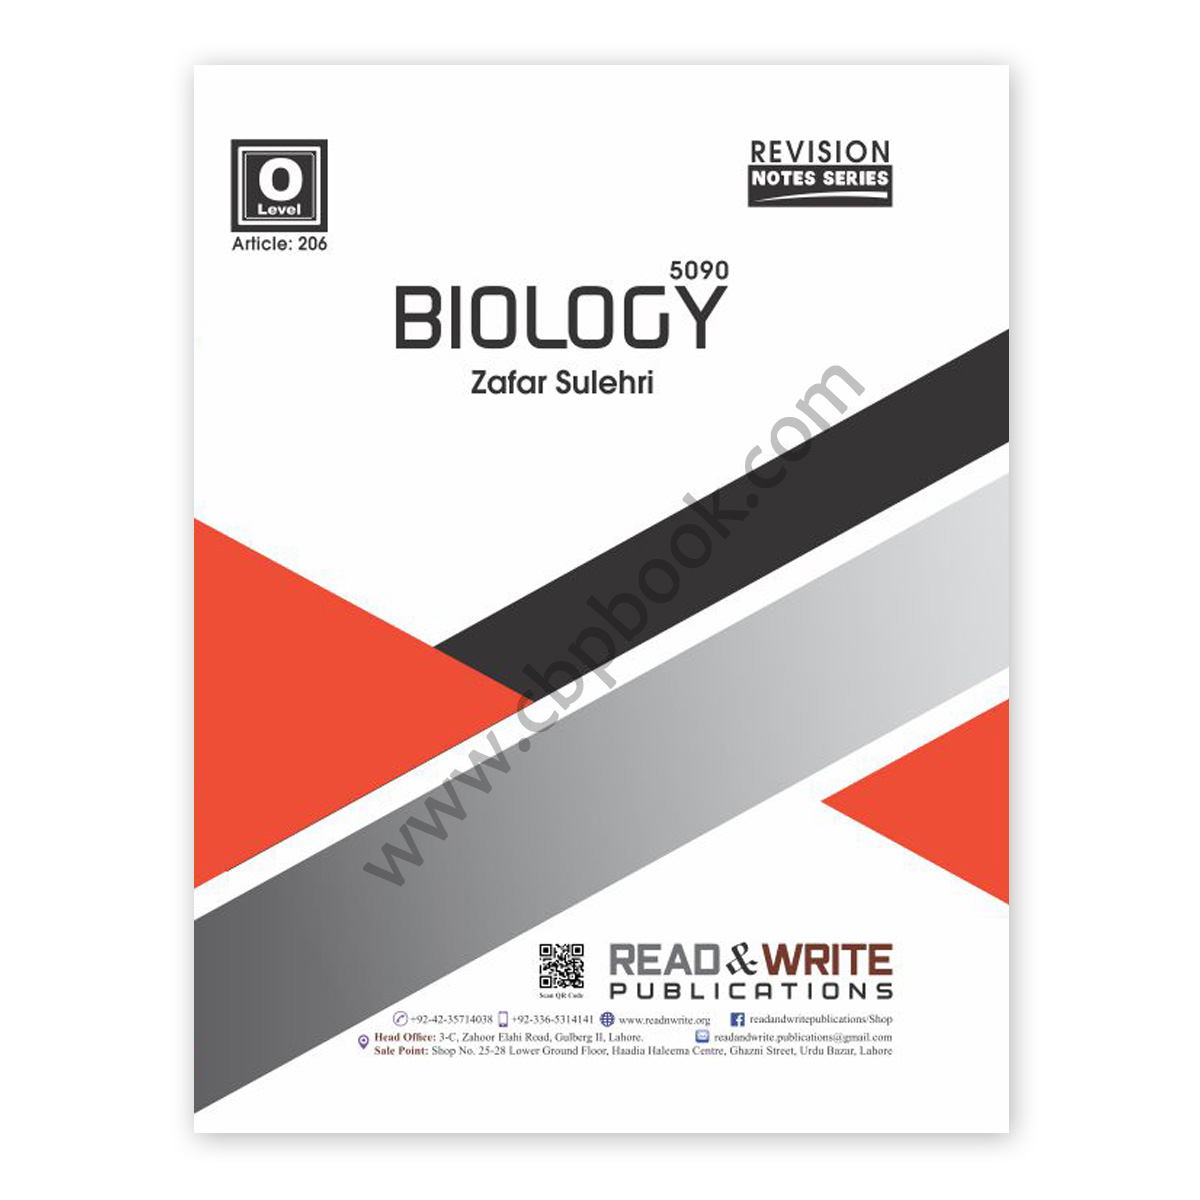 o level biology revision notes (art#206) by zafar sulehri - read & write